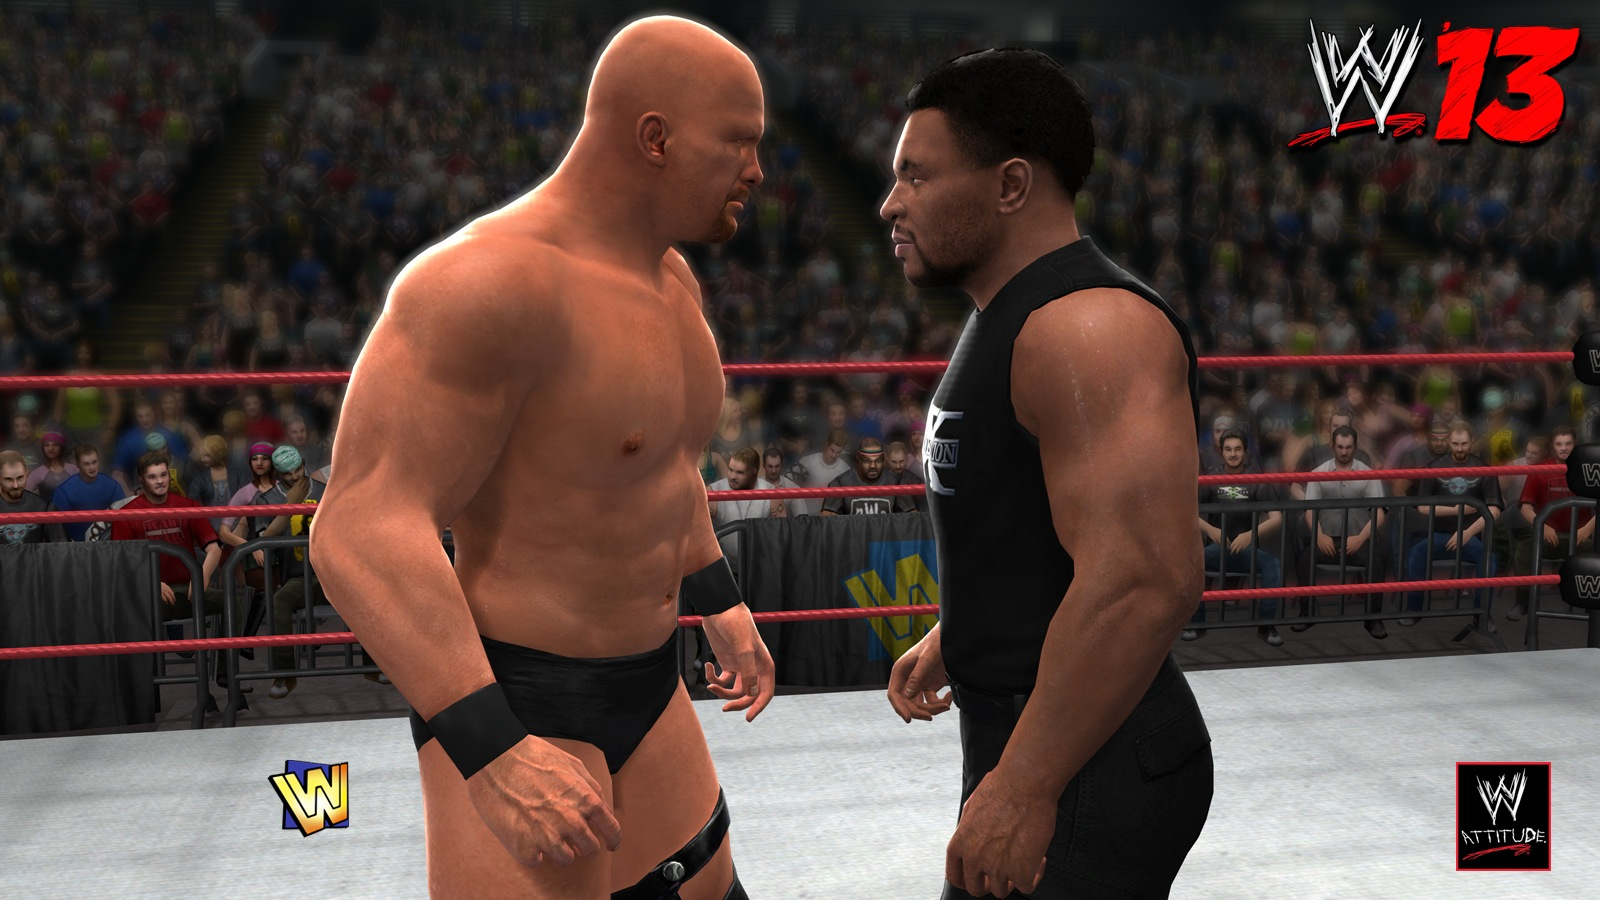 wwe 13 wii iso download